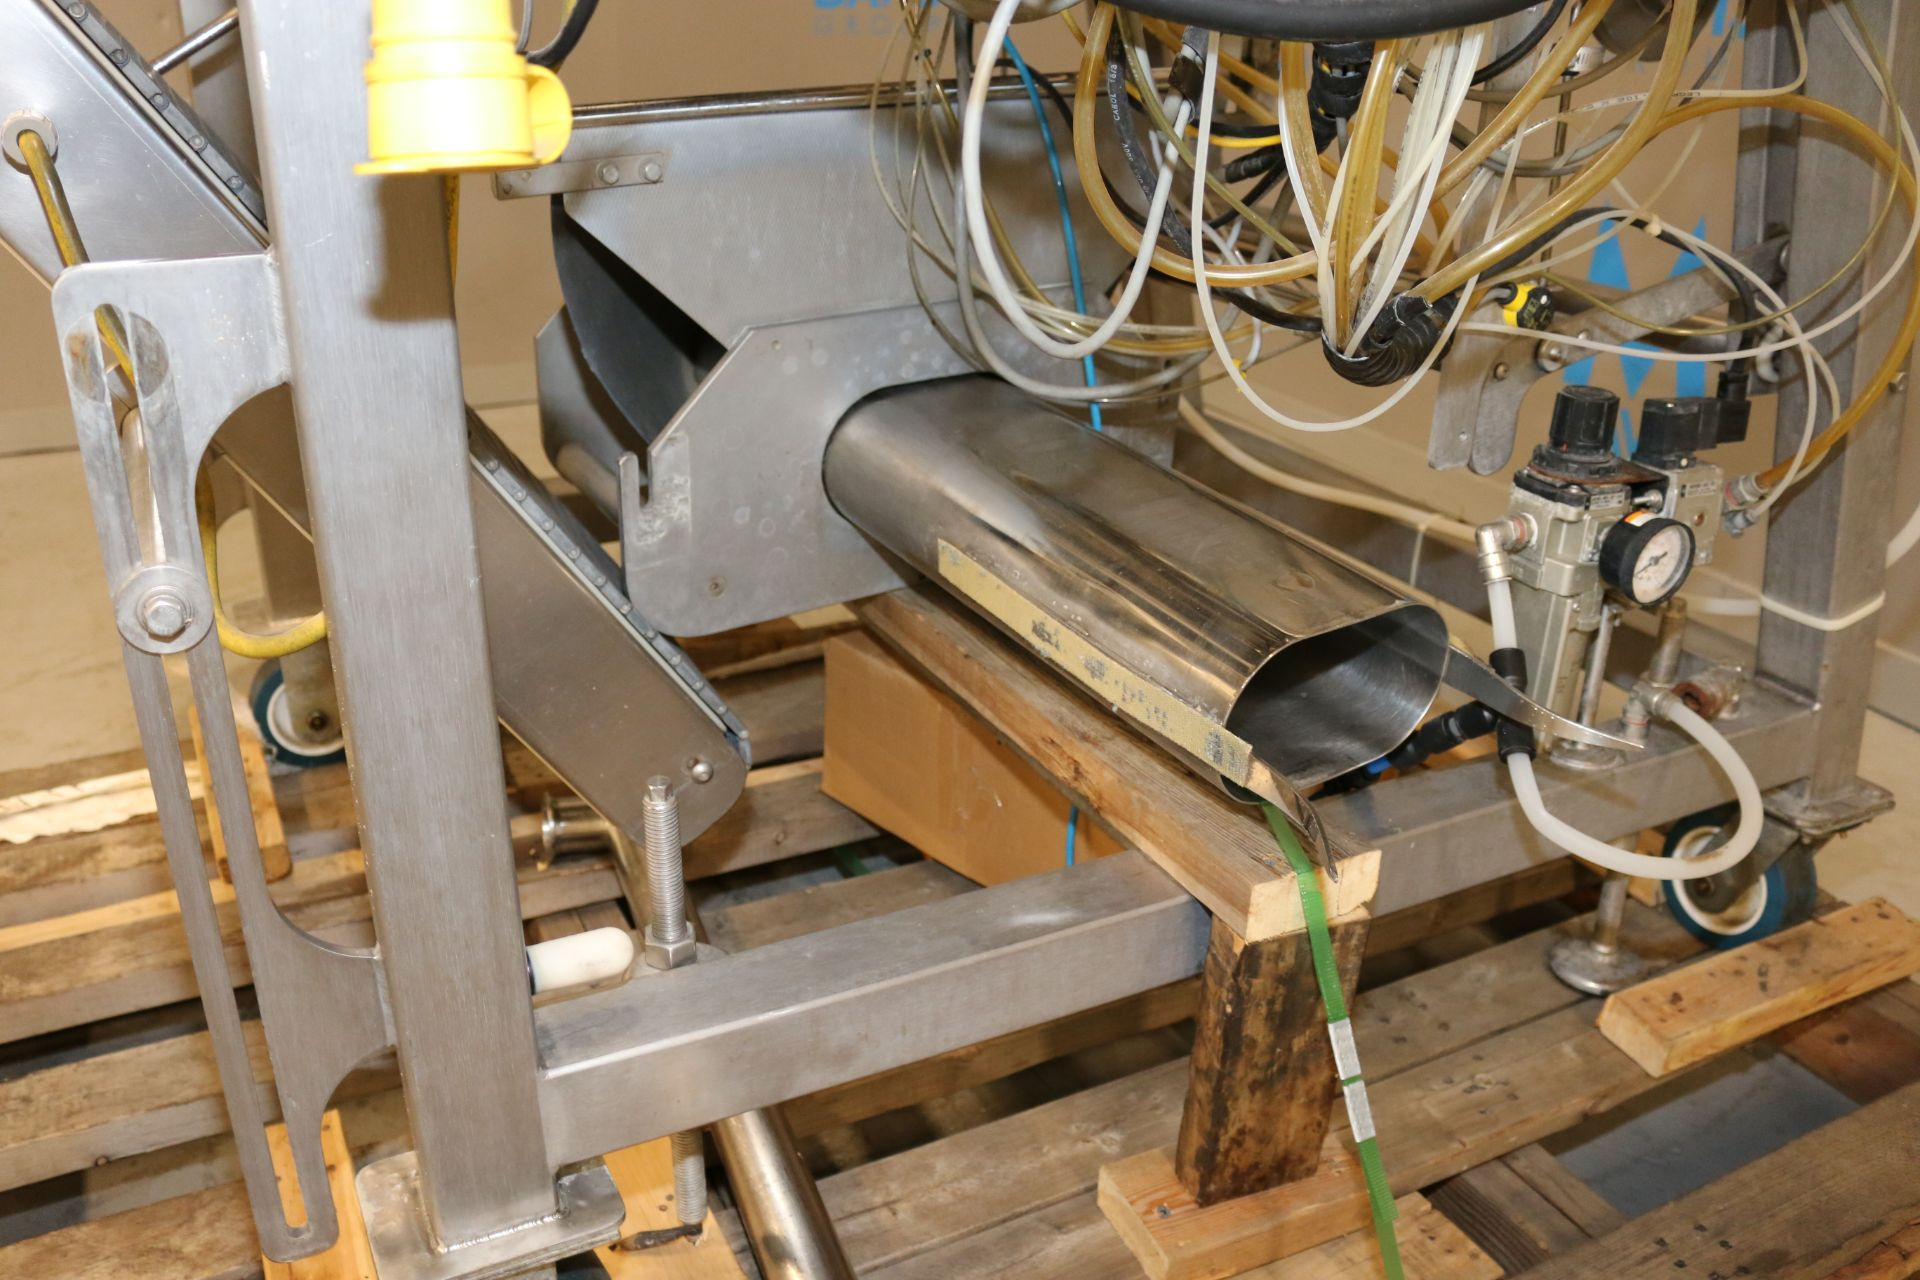 """Lot 41 - TUCS VFFS, M/N TVF-10-25-C, S/N 0098, with Aprox. 12"""" W Discharge Conveyor, with Control Panel"""